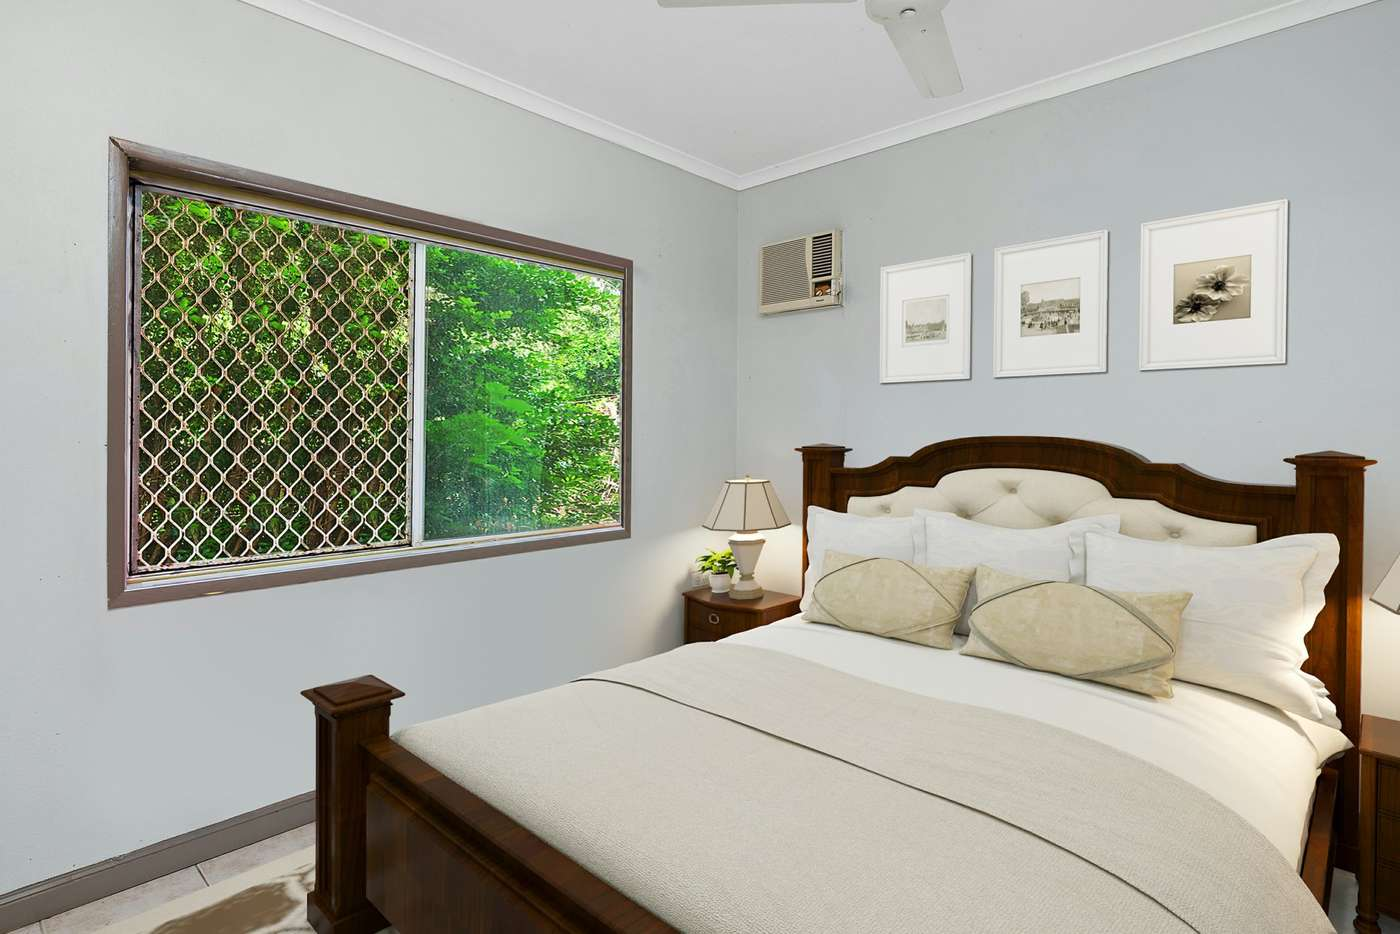 Sixth view of Homely house listing, 48 Sidlaw Street, Smithfield QLD 4878